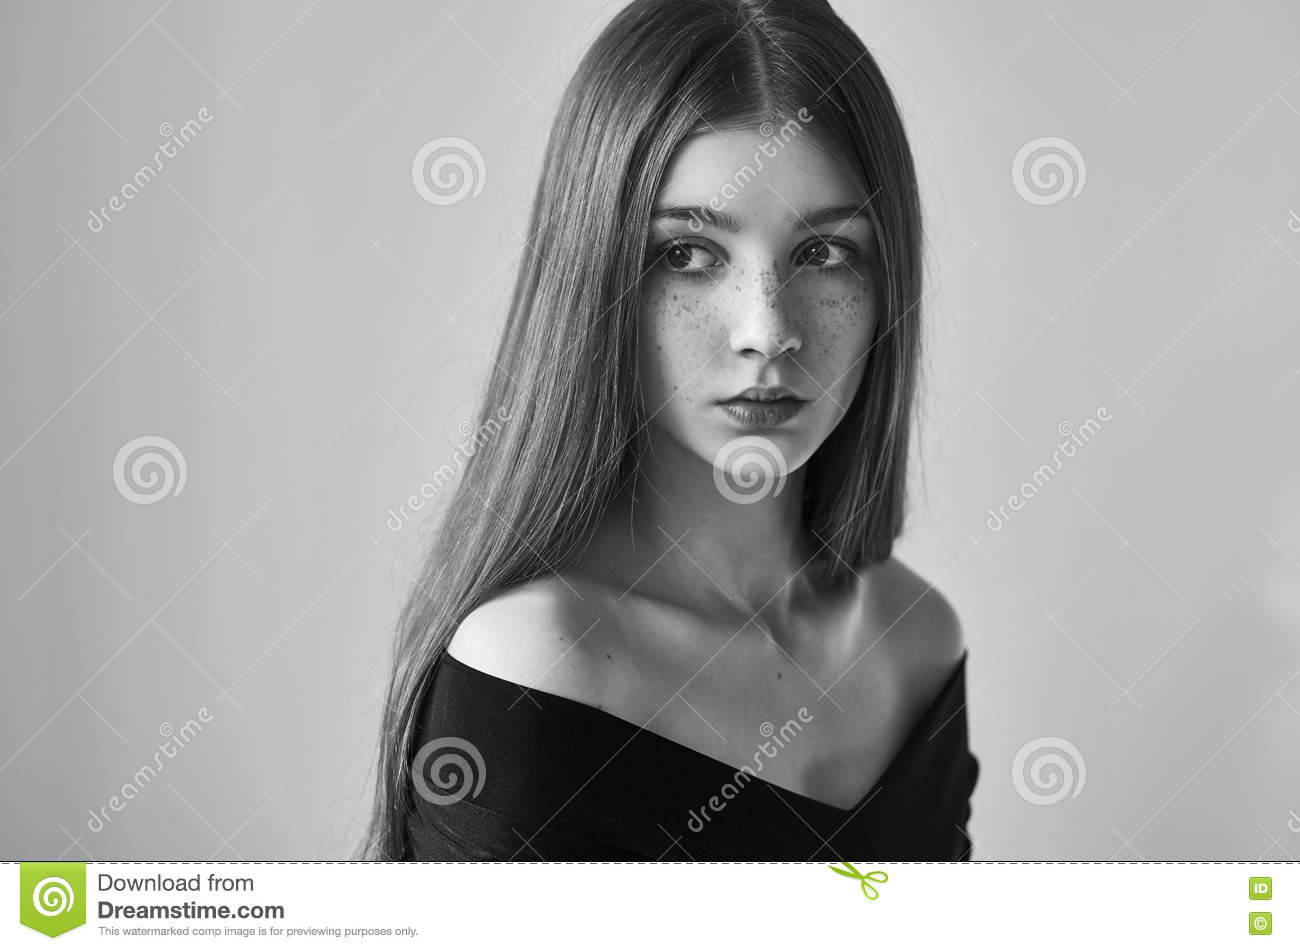 Download Dramatic Black And White Portrait Of A Beautiful Lonely Girl With Freckles  On A White Background In Studio Shot Stock Photo - Image of attractive, beauty: 82114436